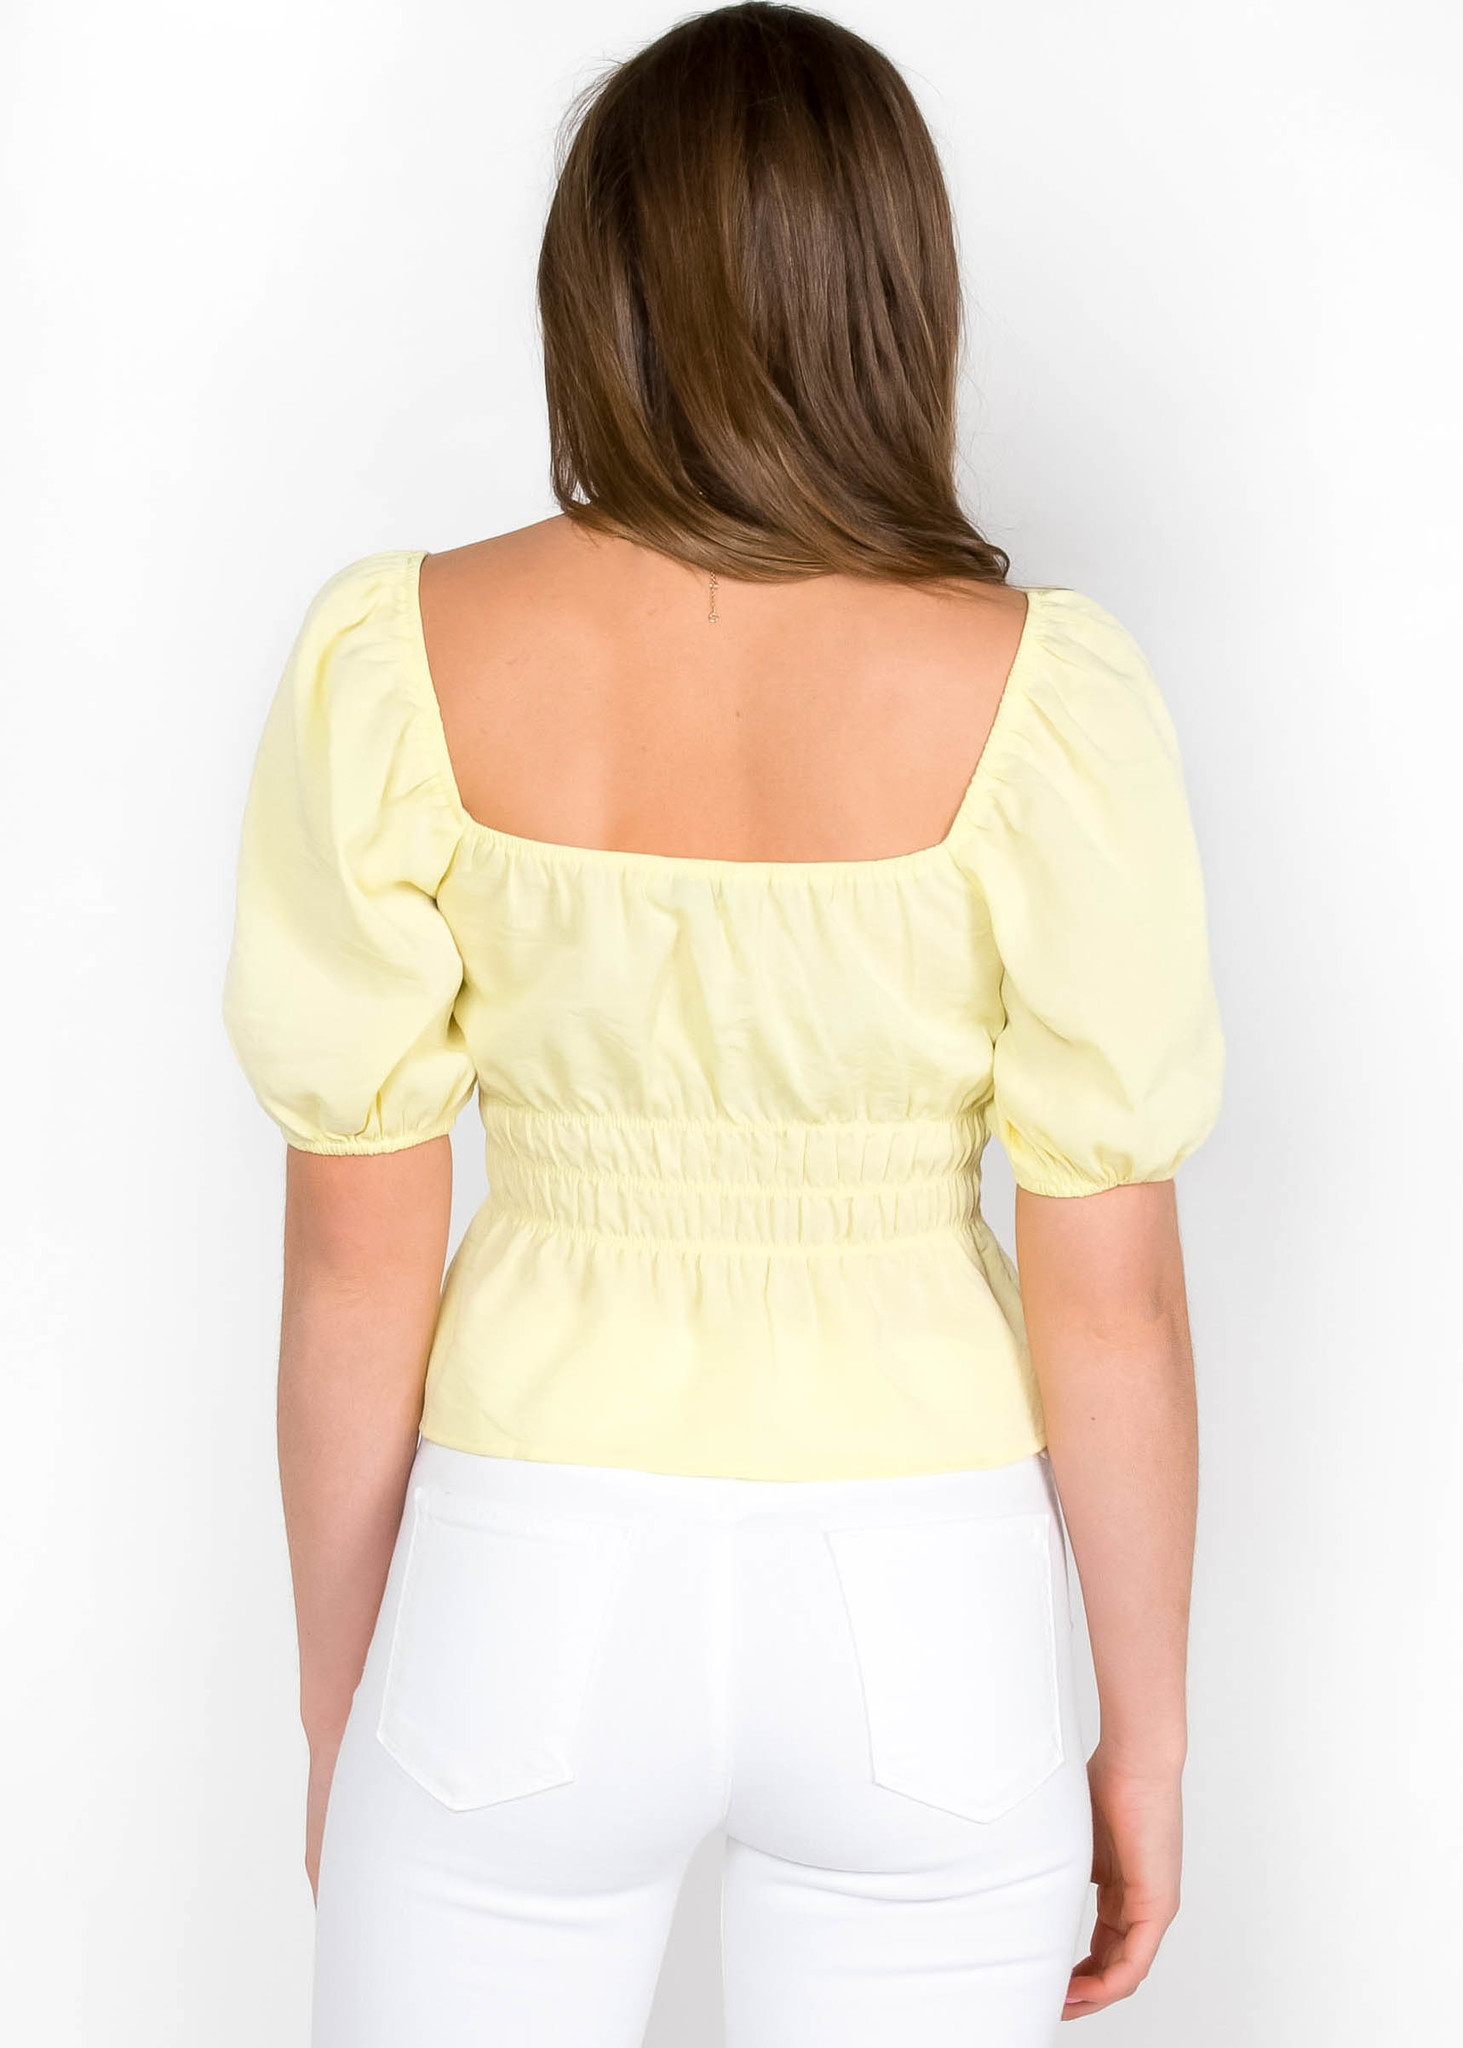 ABOVE THE CLOUDS PEPLUM TOP